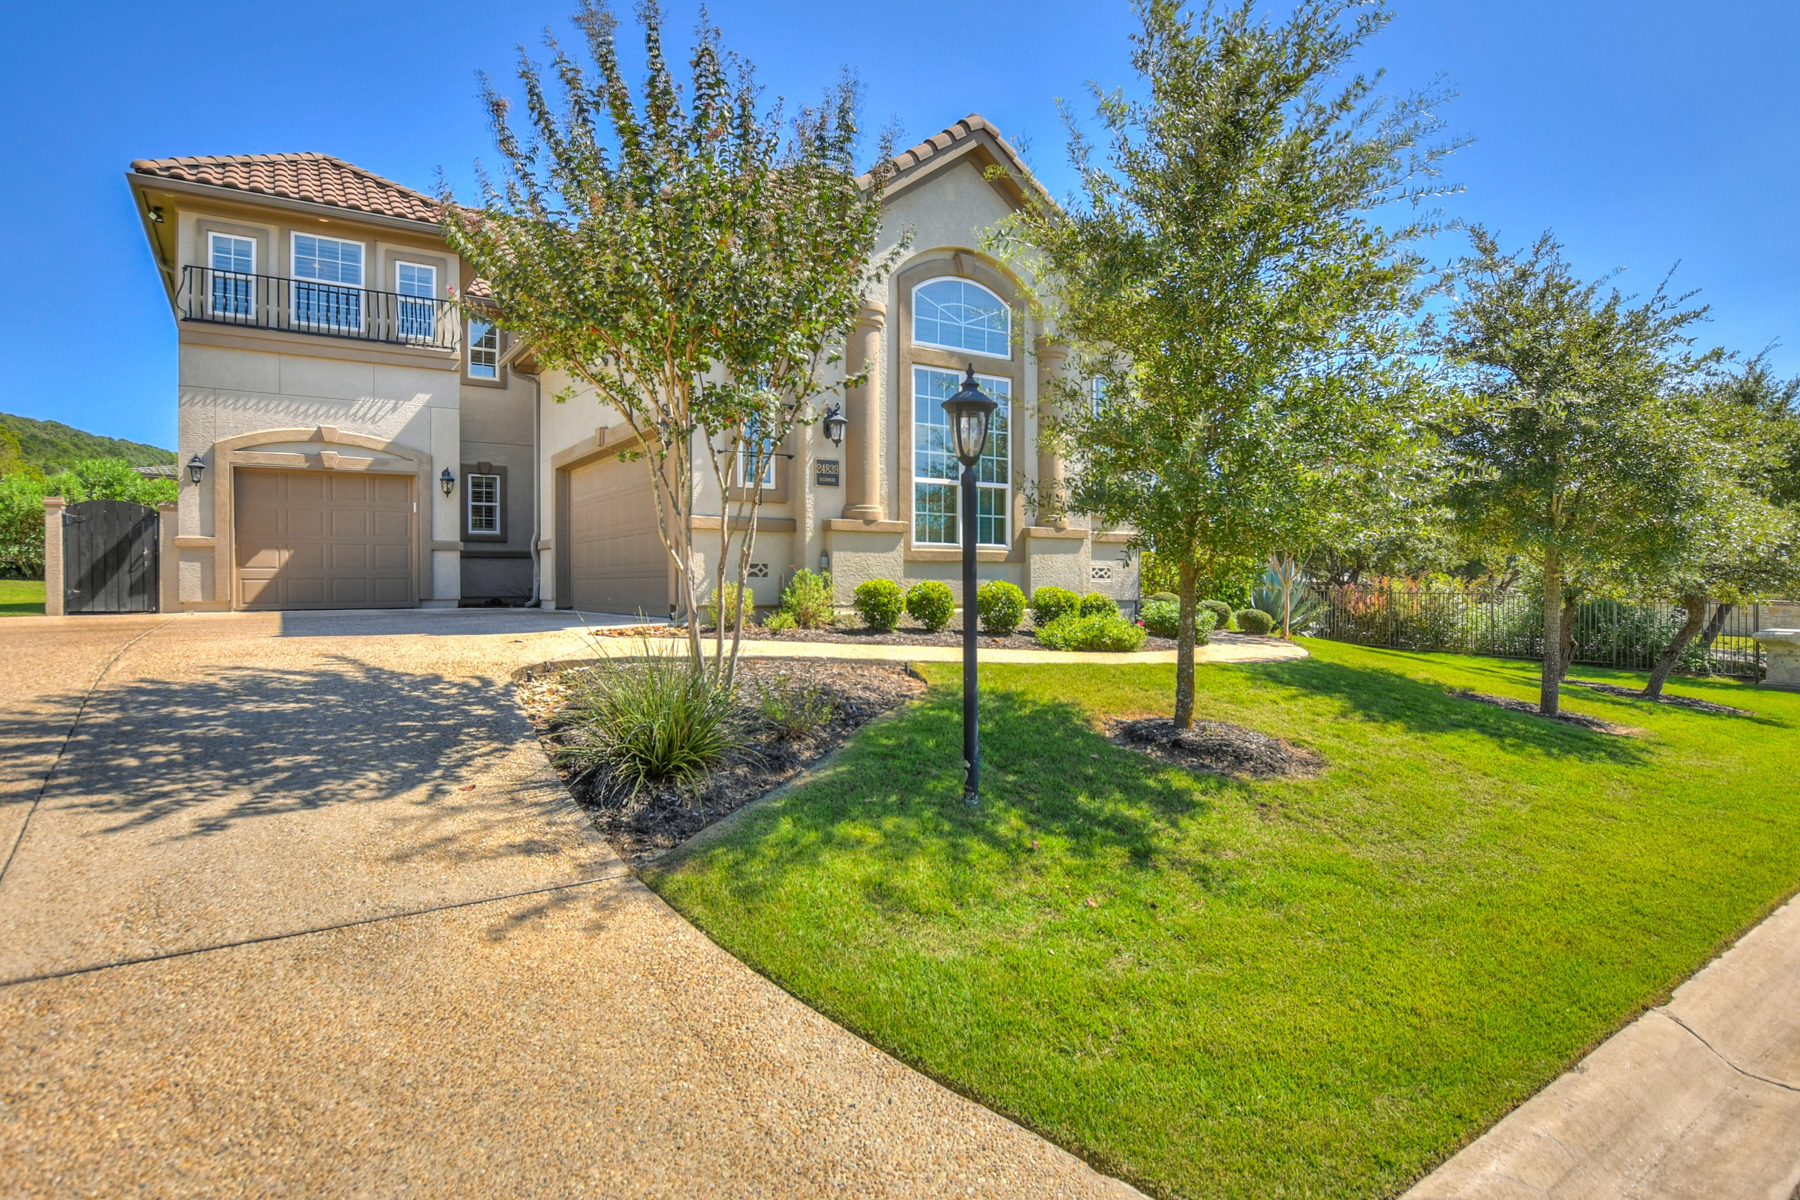 Additional photo for property listing at Award Winning Gem in The Dominion 24839 Ellesmere San Antonio, Texas 78257 United States